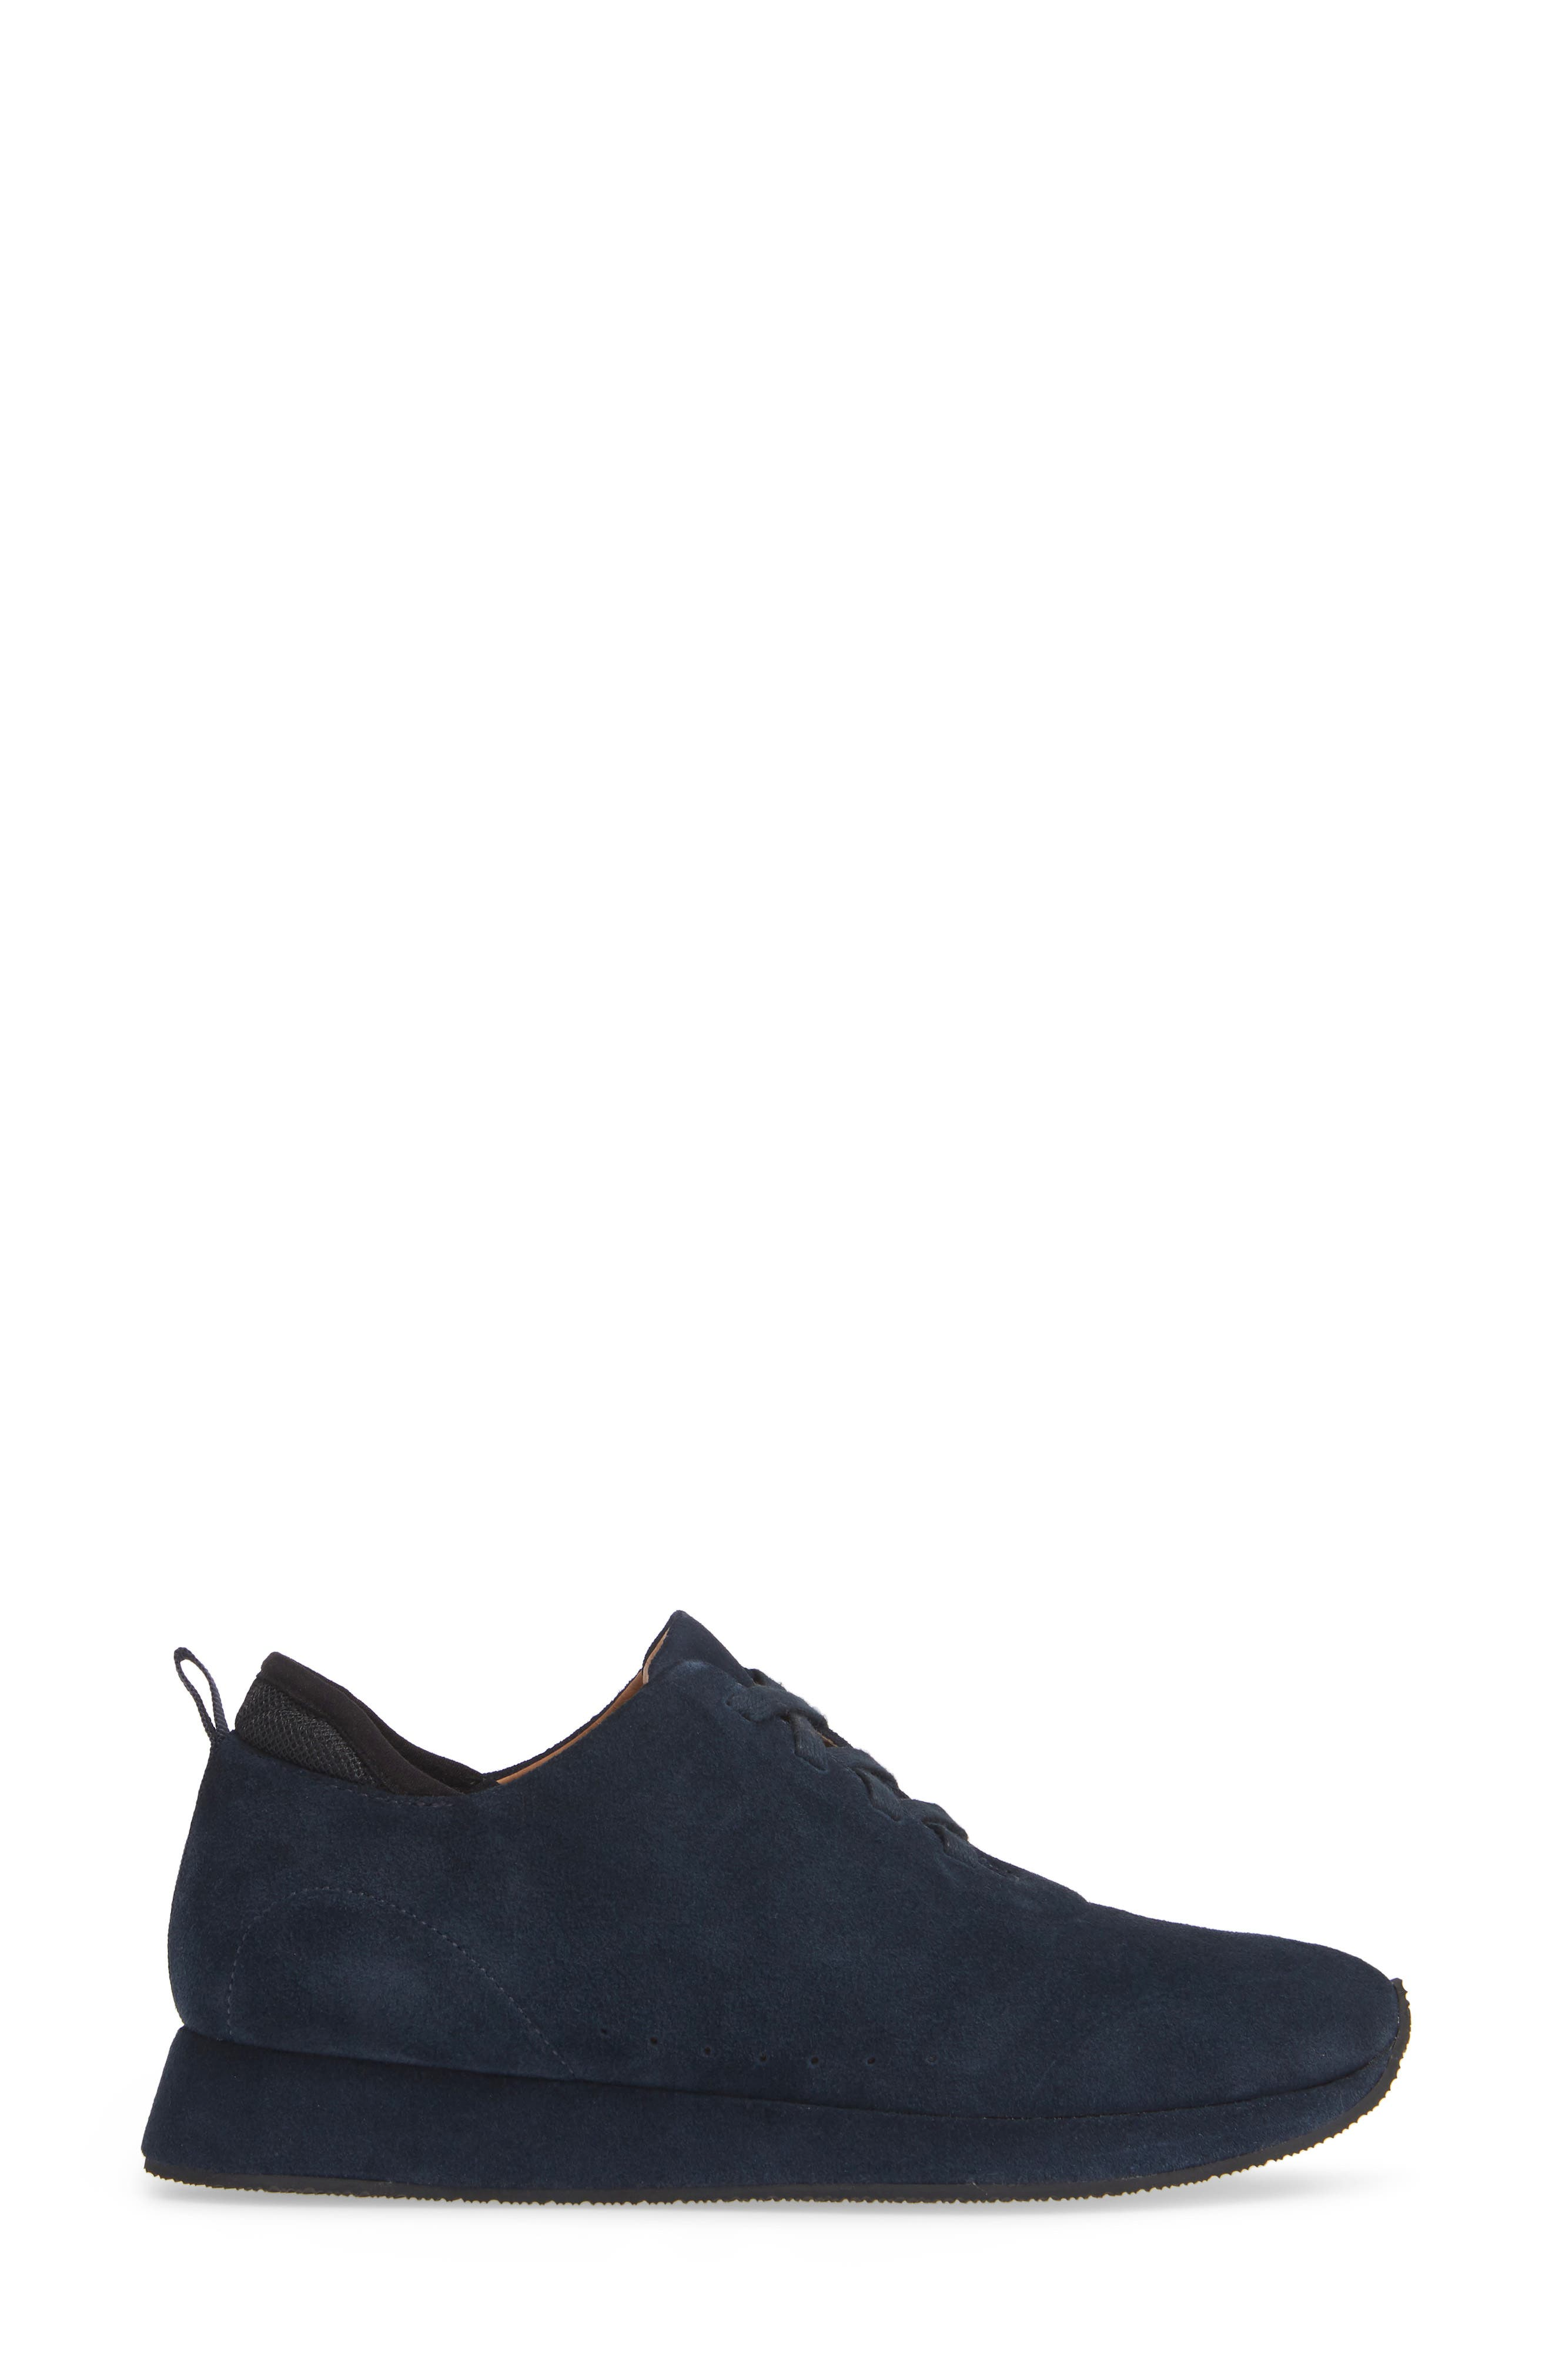 SUDINI,                             Mabel Sneaker,                             Alternate thumbnail 3, color,                             NAVY SUEDE